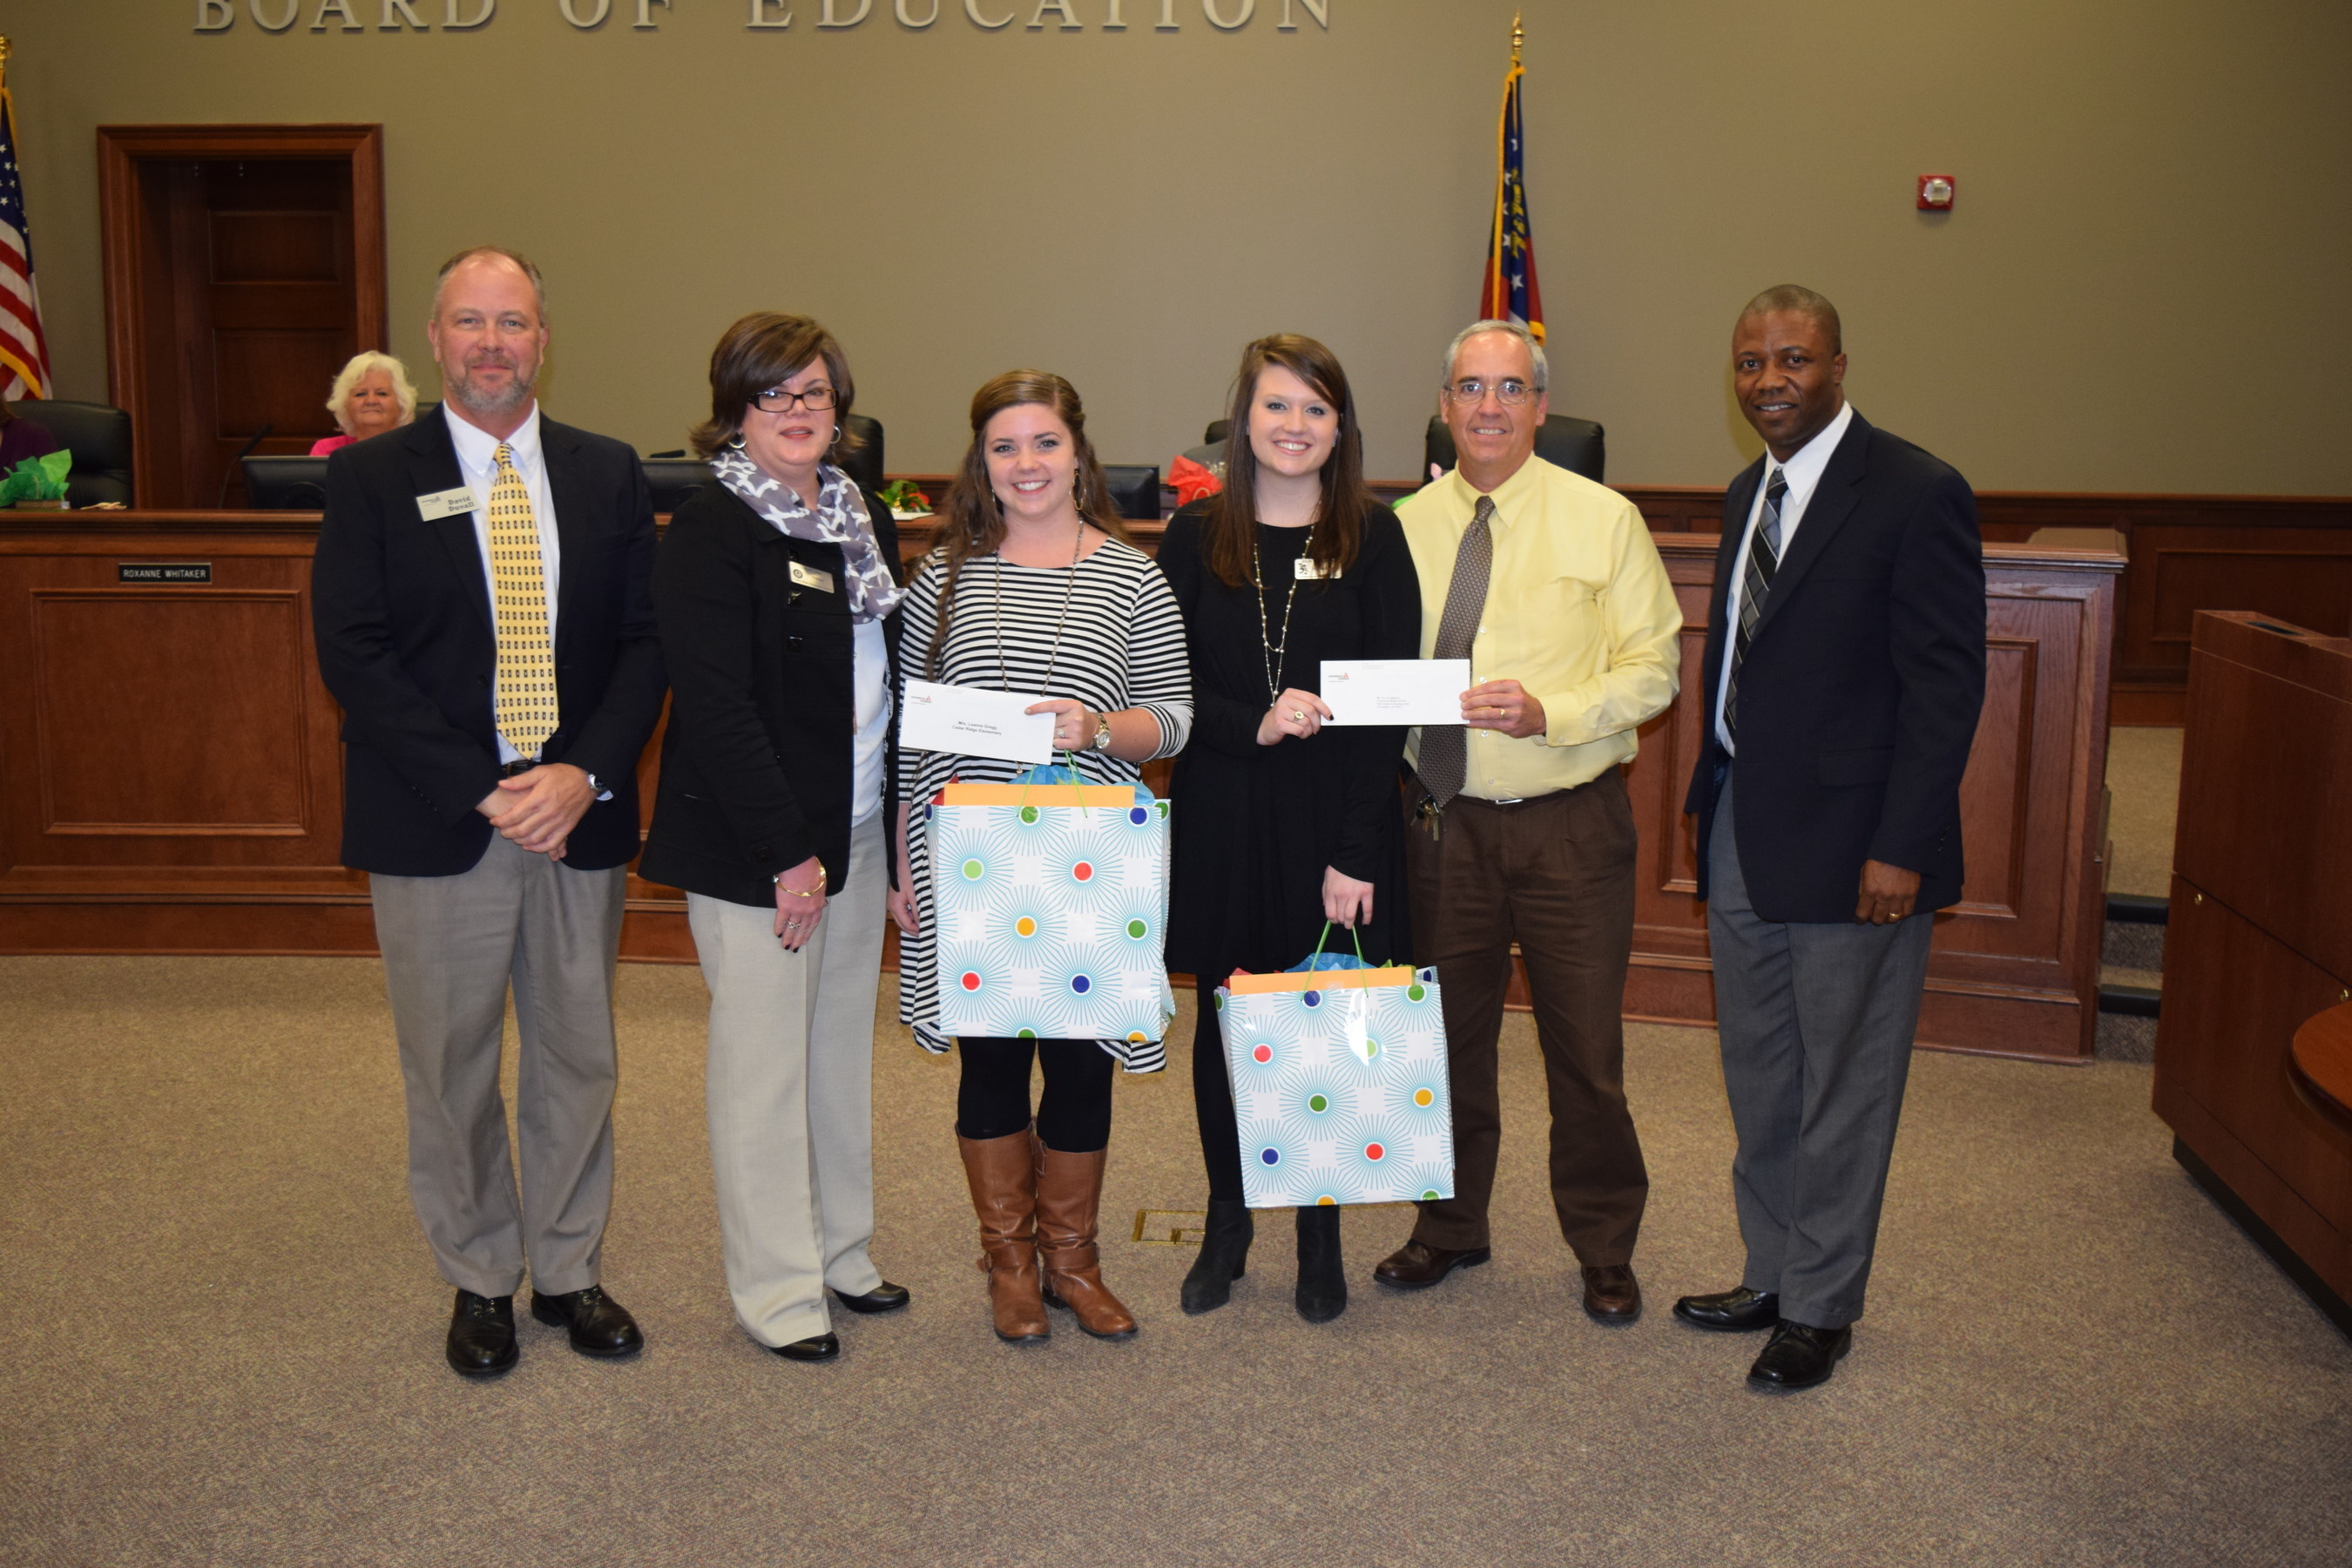 Georgia Power New Teacher Assistance Grant recipients, Brooke Byrd and Erin Wedereit, accepts their grants during a presentation at the Columbia County Board of Education meeting.